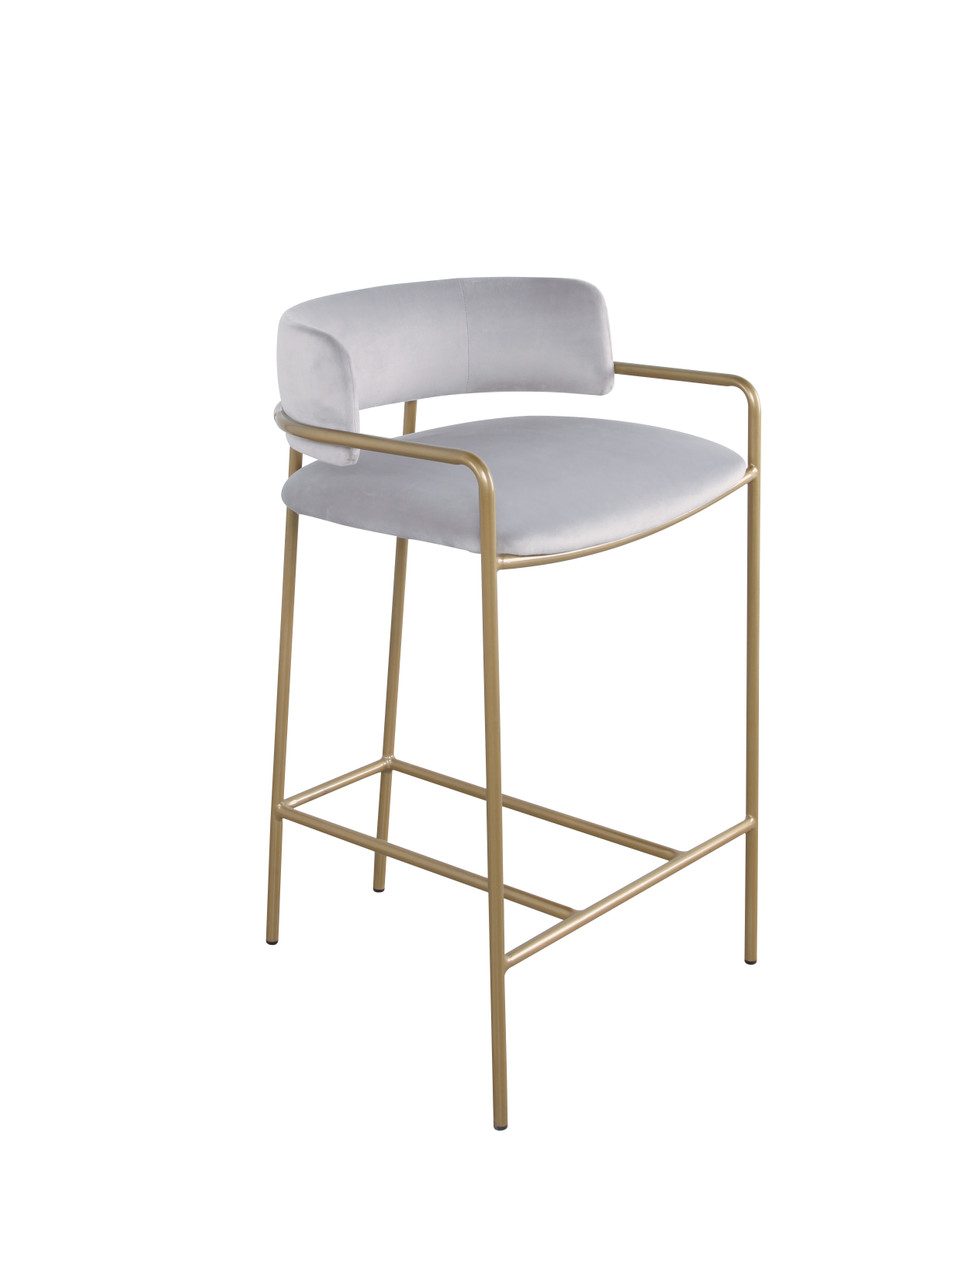 The Grey   Bar Stool   20 available at JaxCo Furniture serving ...